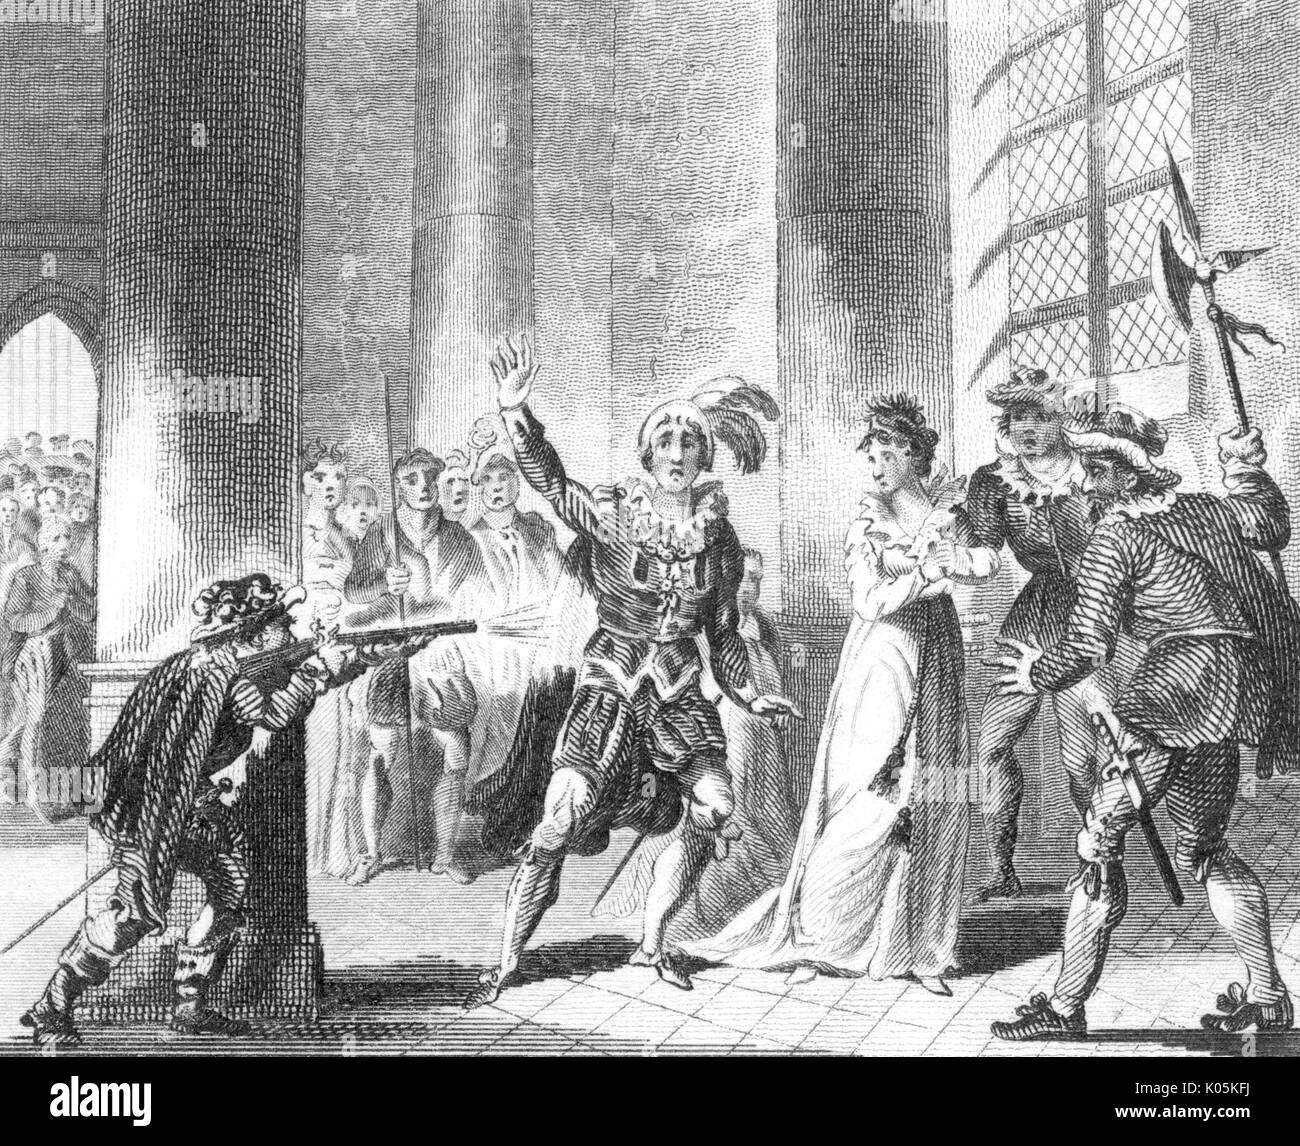 The assasination of William  the Silent of Orange at Delft.         Date: 1584 - Stock Image